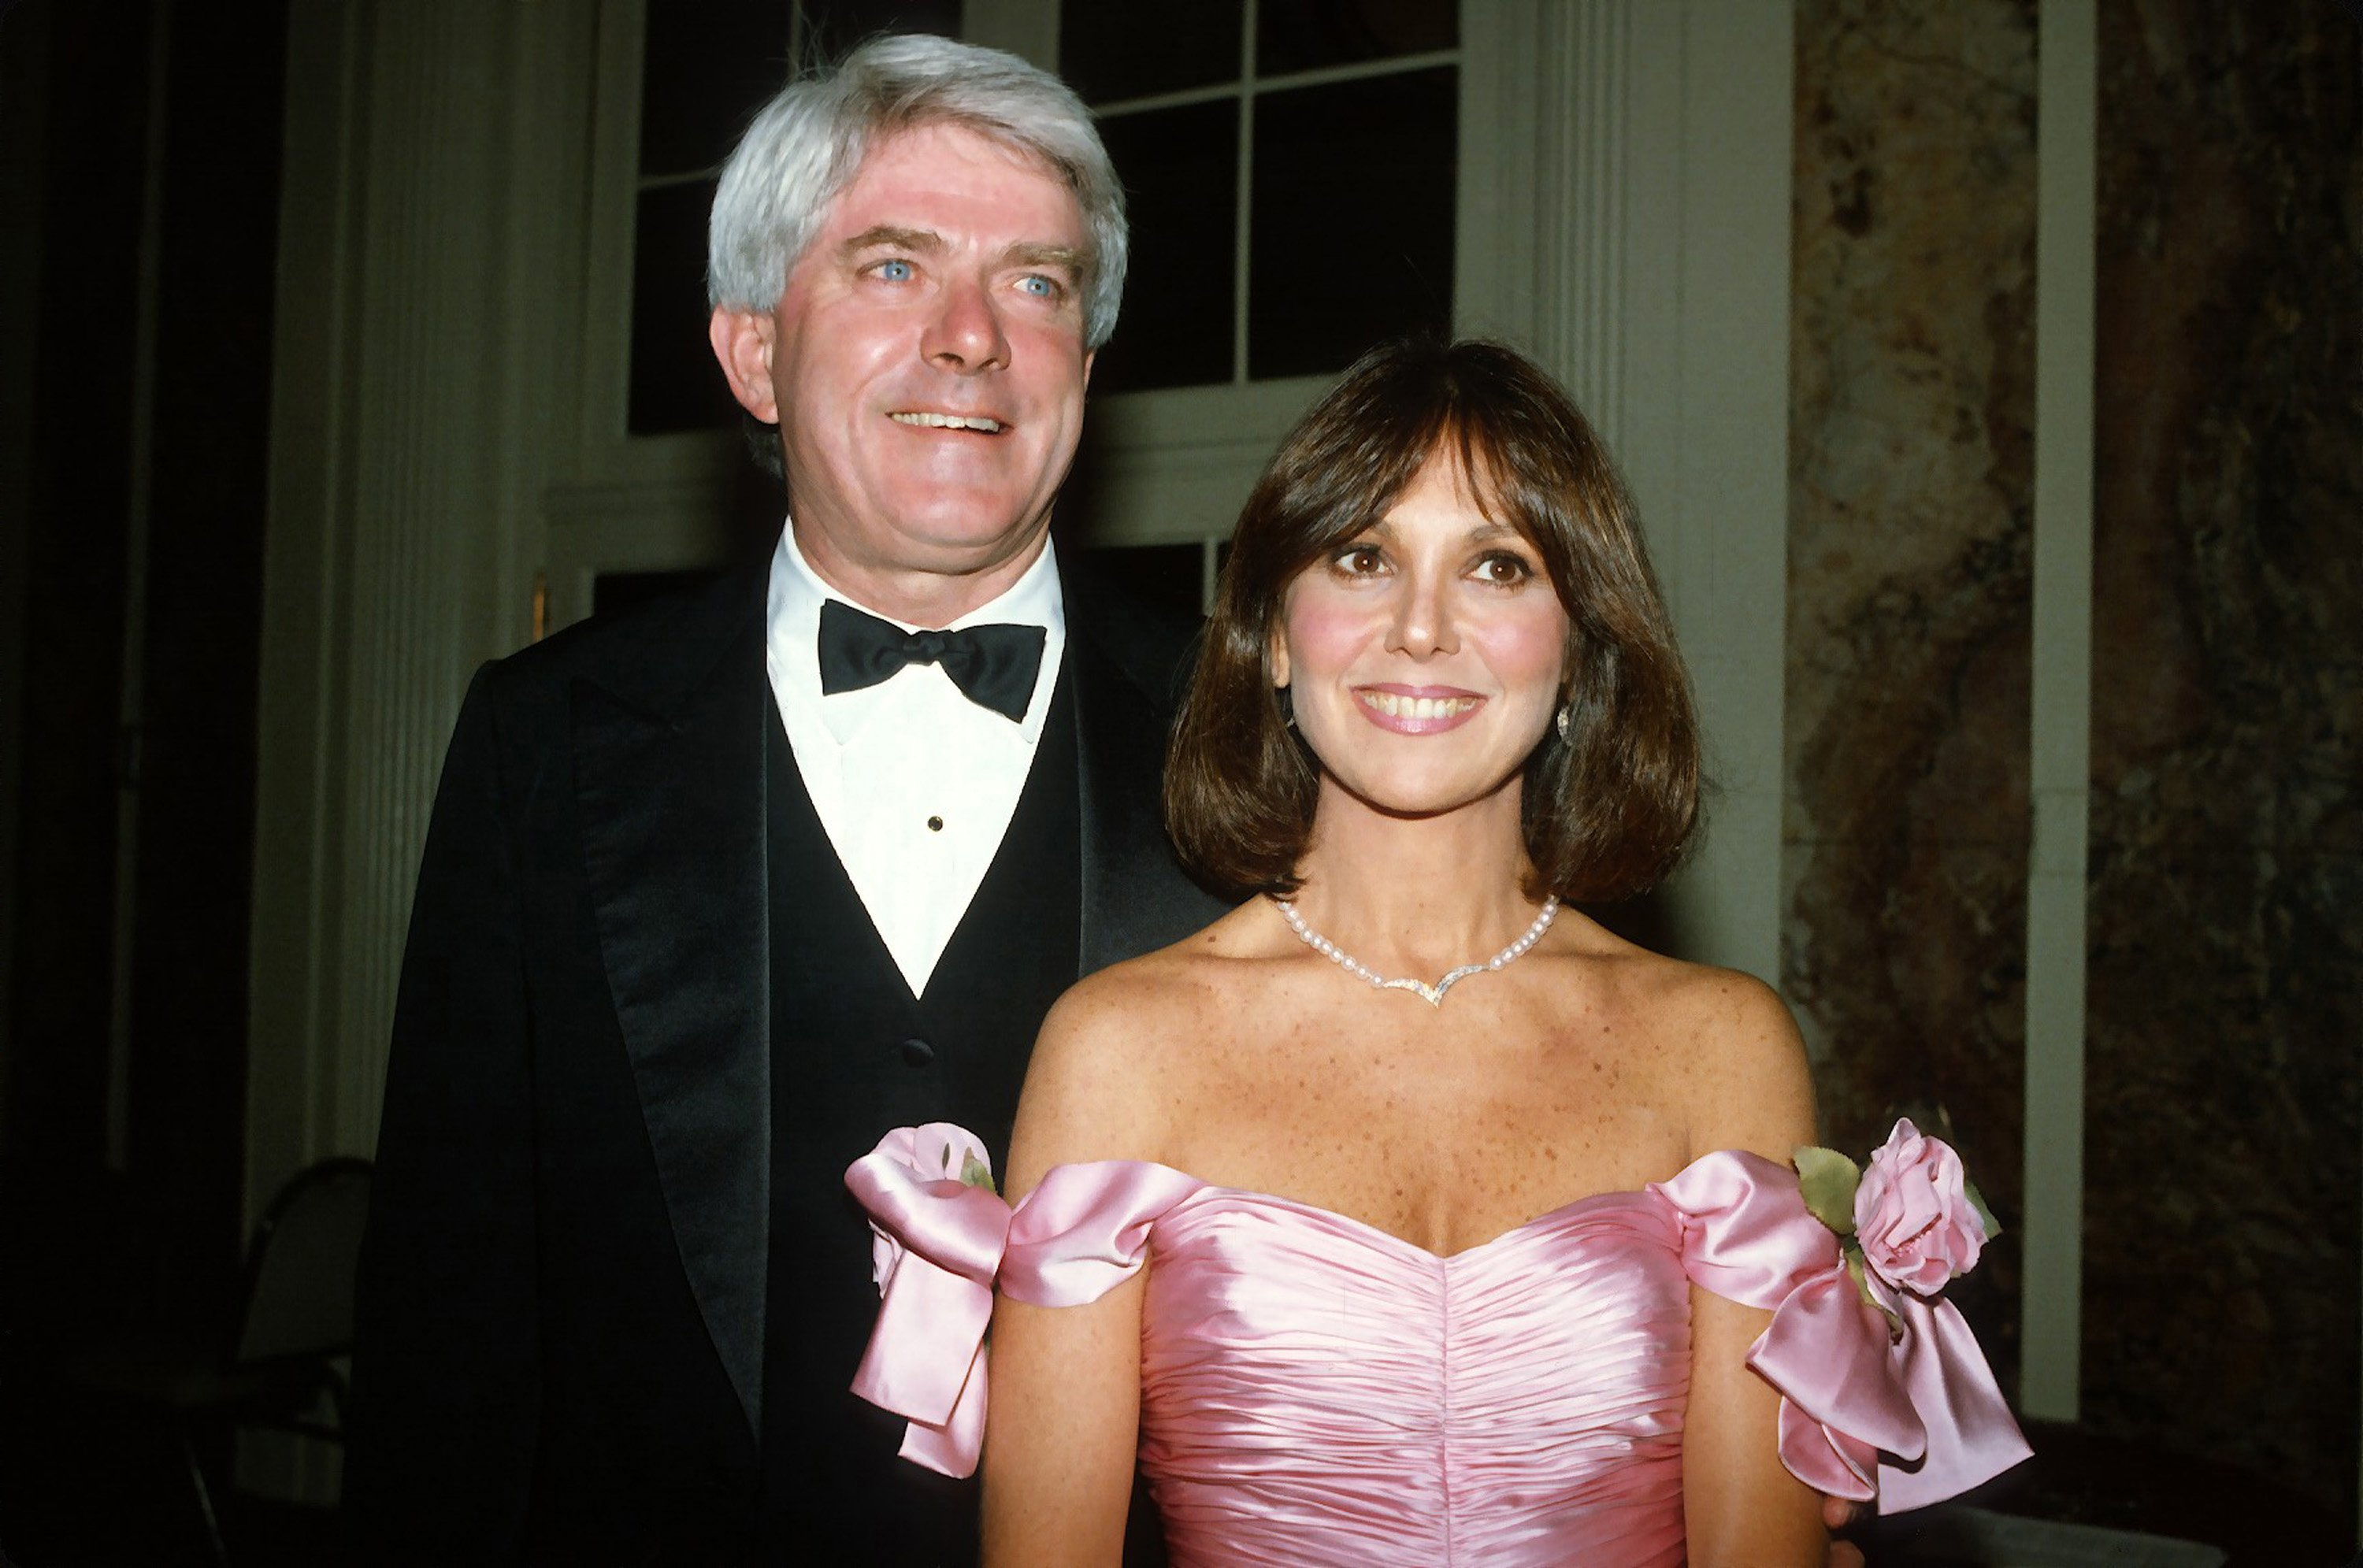 Phil Donohue and Marlo Thomas pose for a photograph at Gloria Steinem's 50th birthday celebration May 23, 1984 in New York City | Photo: GettyImages